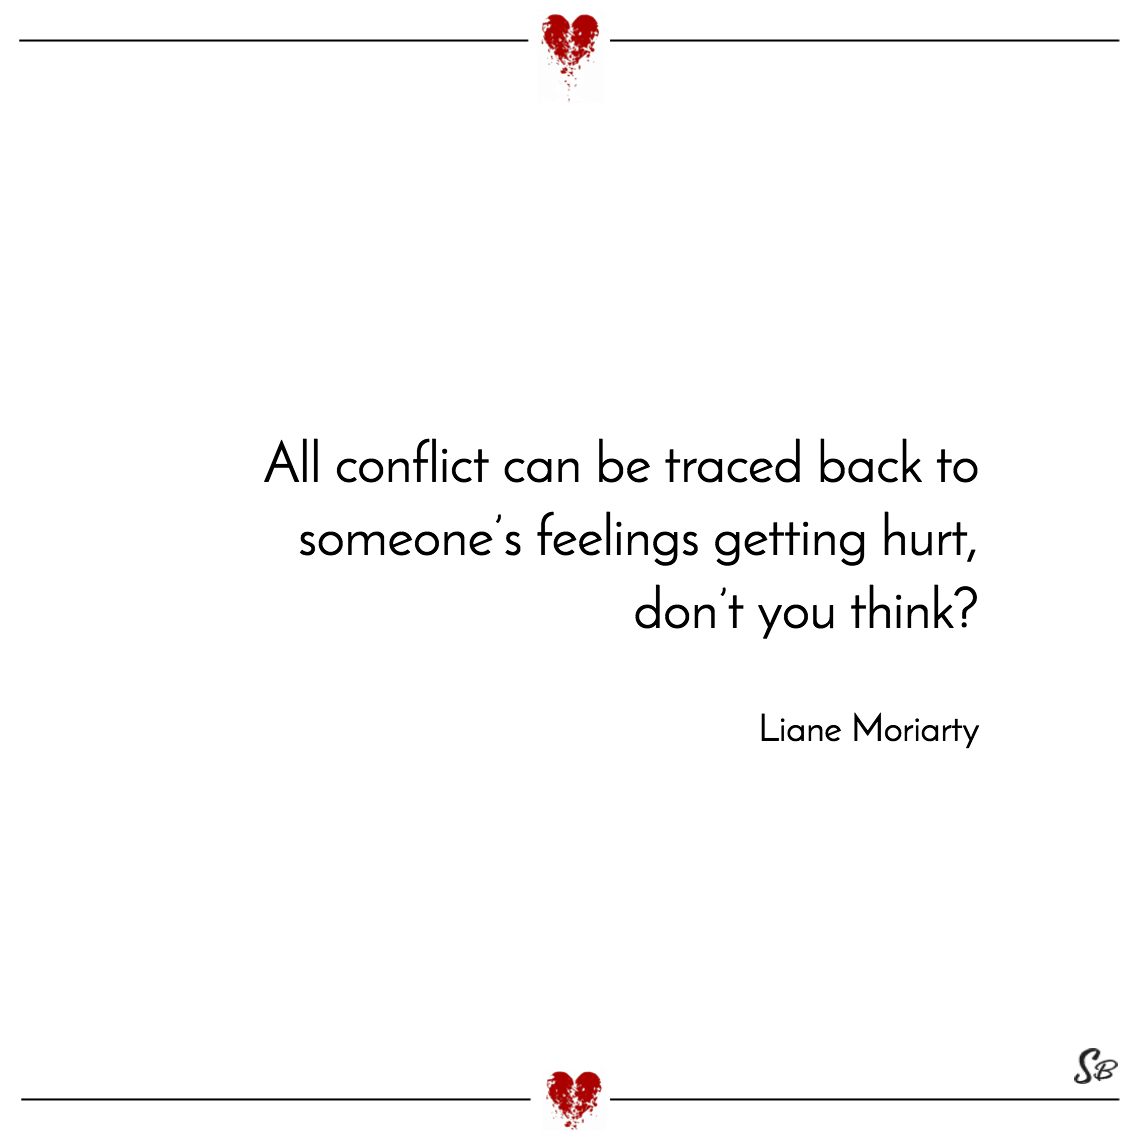 All conflict can be traced back to someone's feelings getting hurt, don't you think liane moriarty